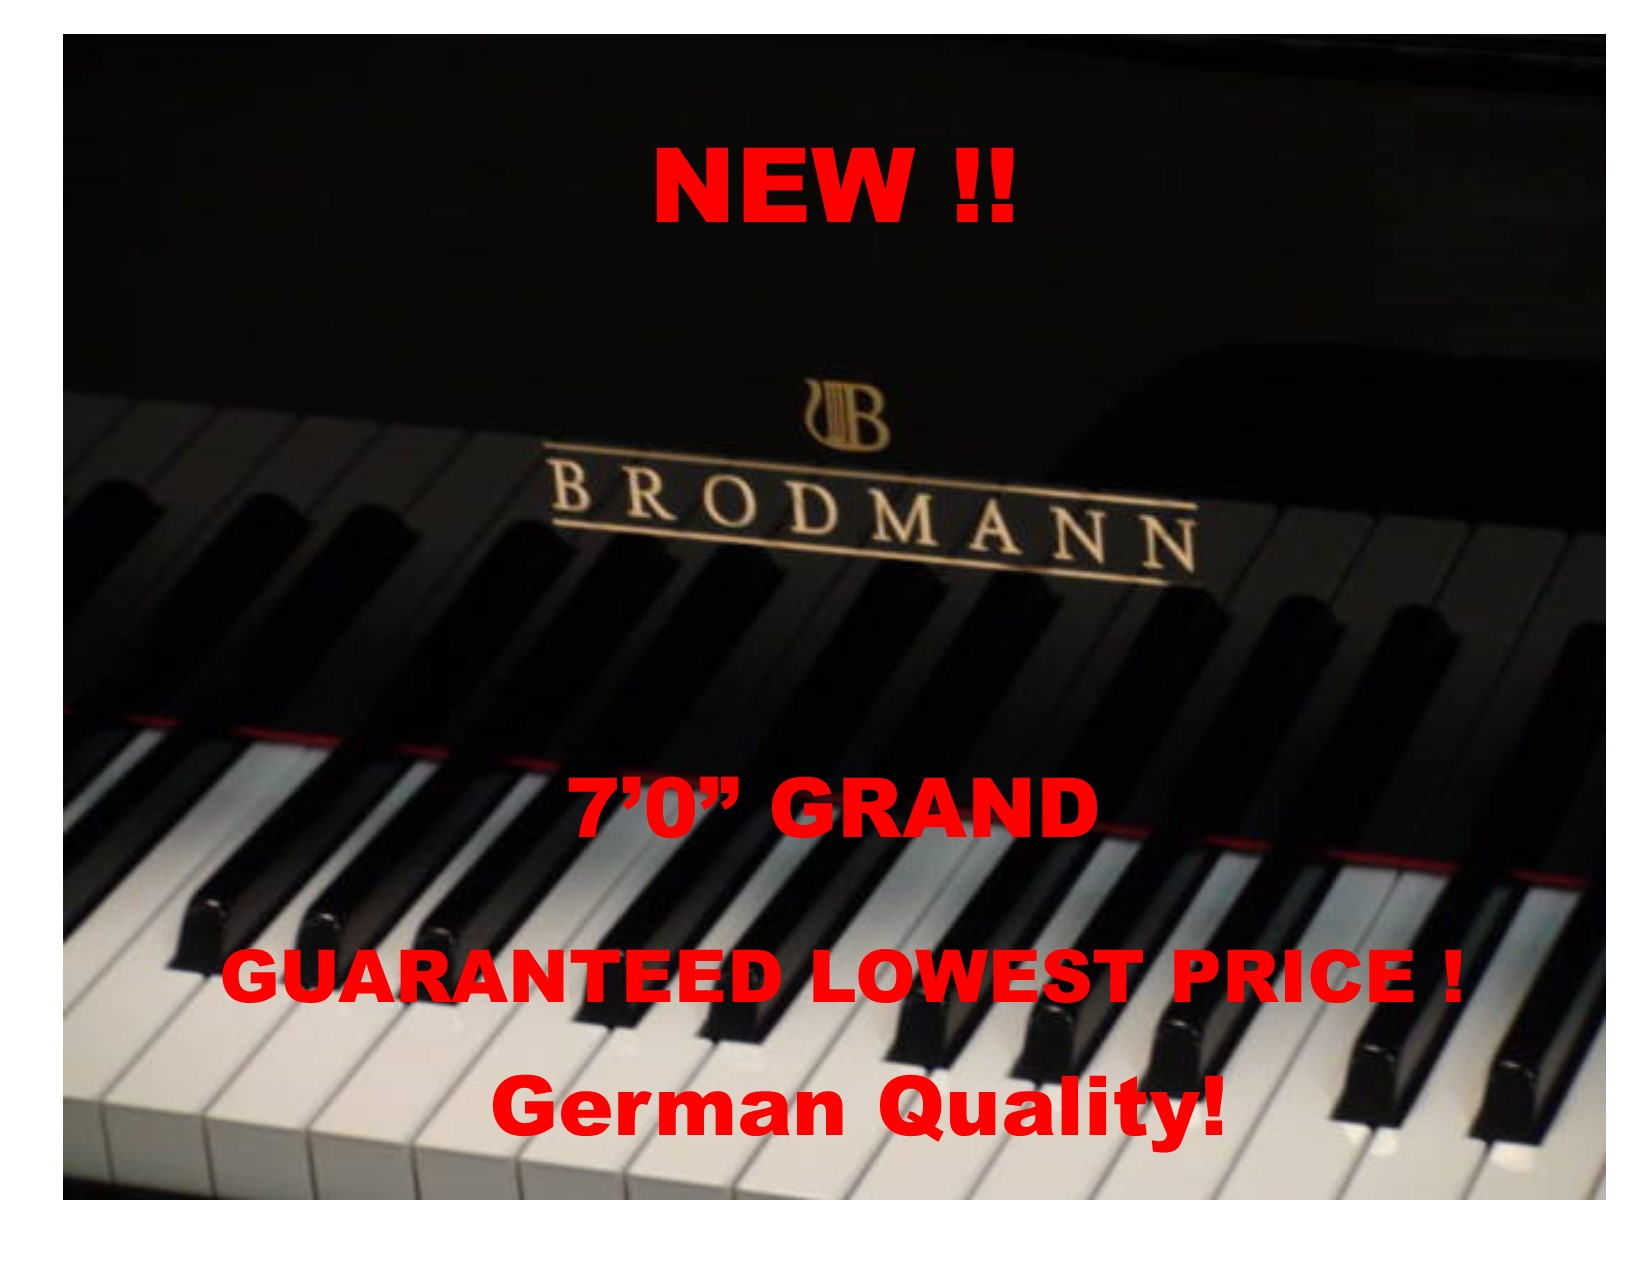 "13993-<br><font color=black><b>NEW BRODMANN</b></font> 7'0″ Semi-Concert Grand ""German Built""<br><font color=blue><b>Click Picture for ""Live Video""</b></font> <br><font color=""red""><b>Guaranteed Lowest Price !</b></font>"